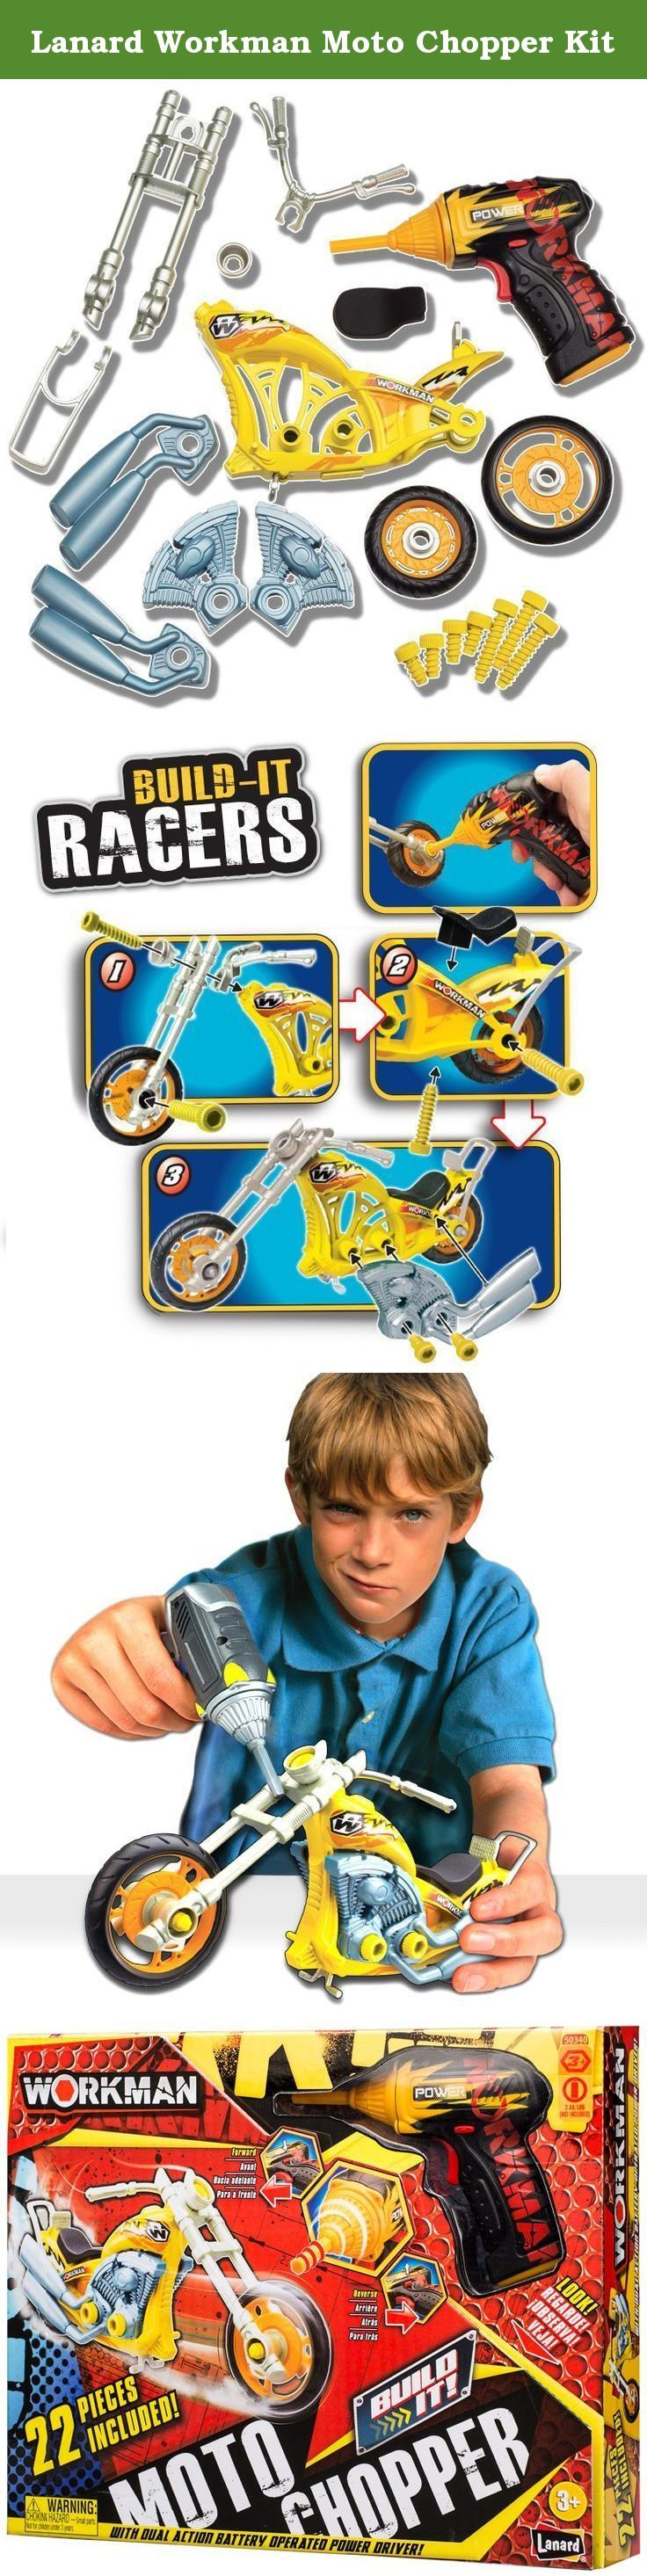 Lanard Workman Moto Chopper Kit. Too young to have your own chopper? Now you can build and create your own Authentic Moto Chopper! Set includes a 2 way Power Driver for quick assembly. The power driver runs on 2 AA batteries, not included. 22 pieces total.